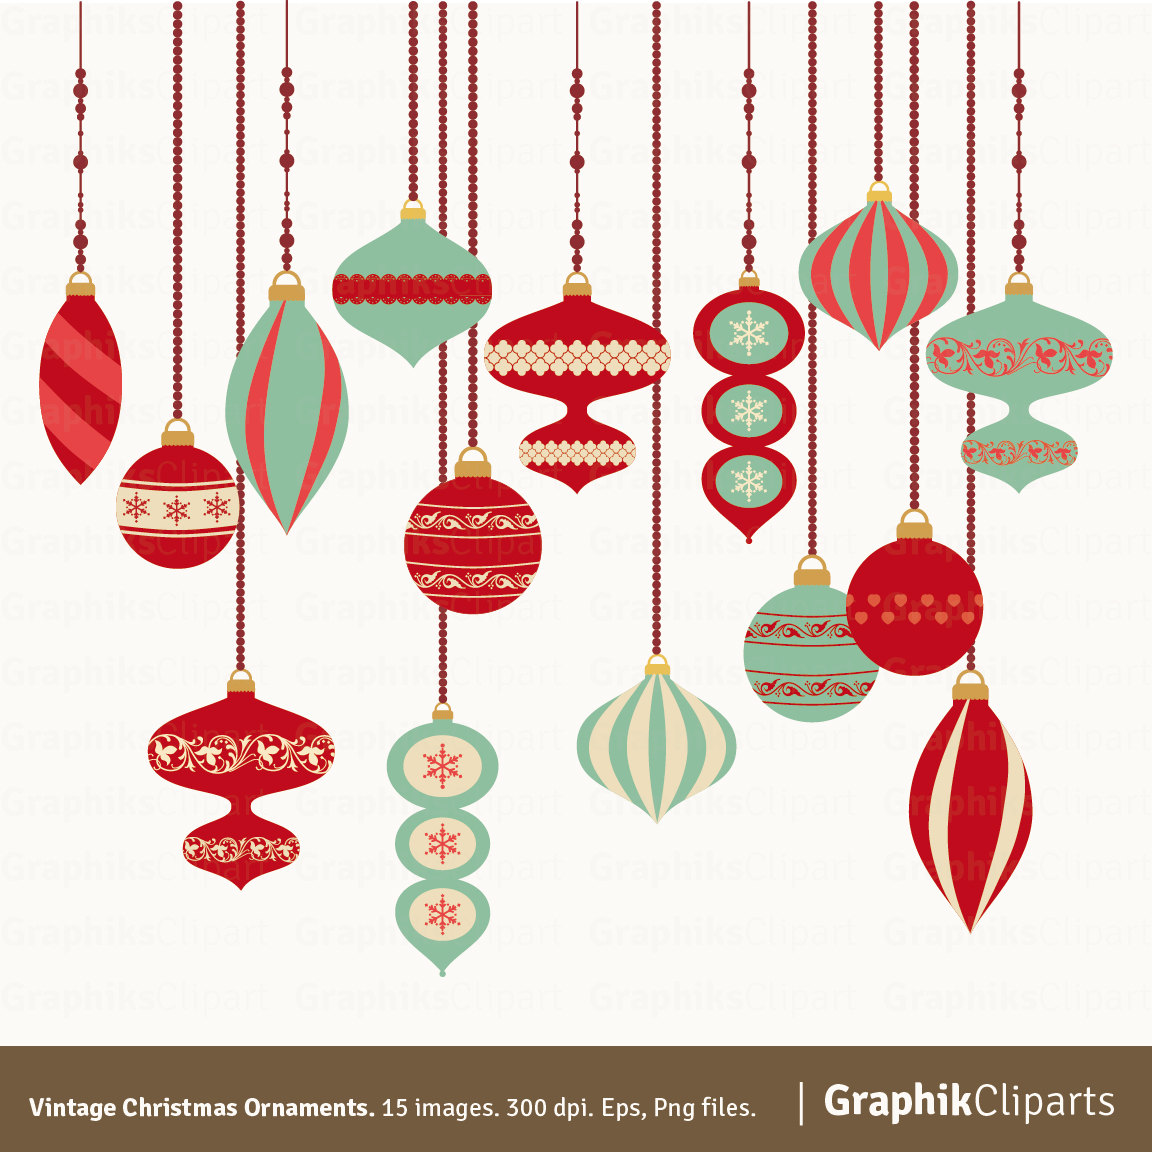 hight resolution of popular items for ornament cliparts ornament free christmas ornament clipart christmas ornaments clipart christmas ornaments clipart